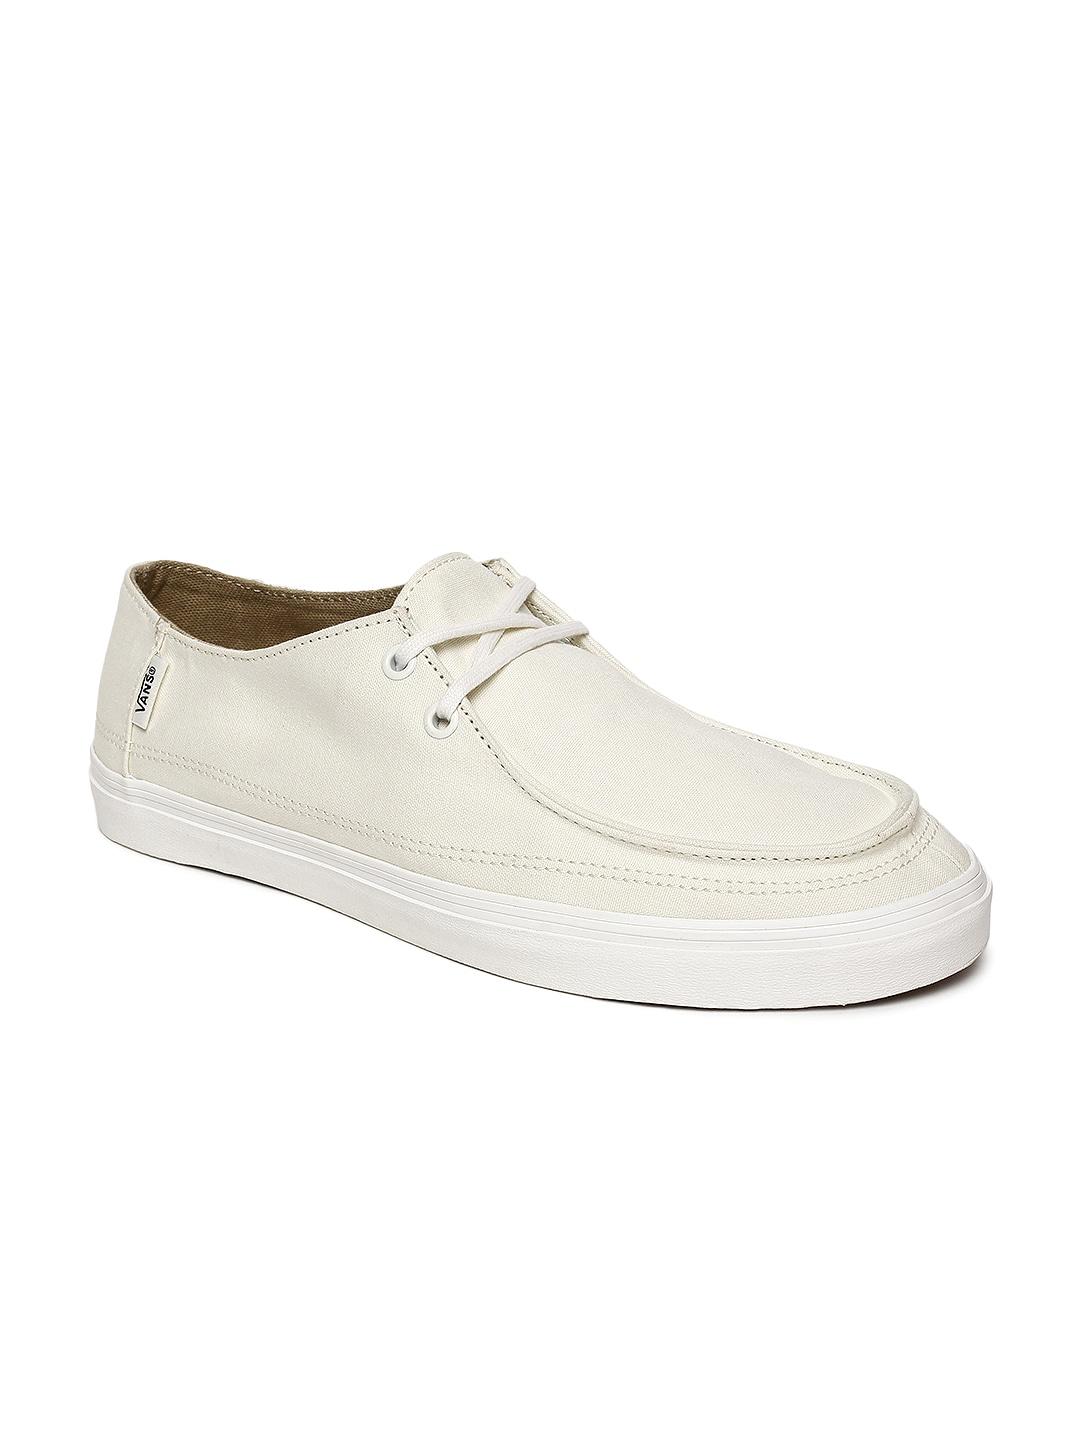 030d8e92cb Vans Shoes for Women - Buy Vans Shoes for Girls Online - Myntra